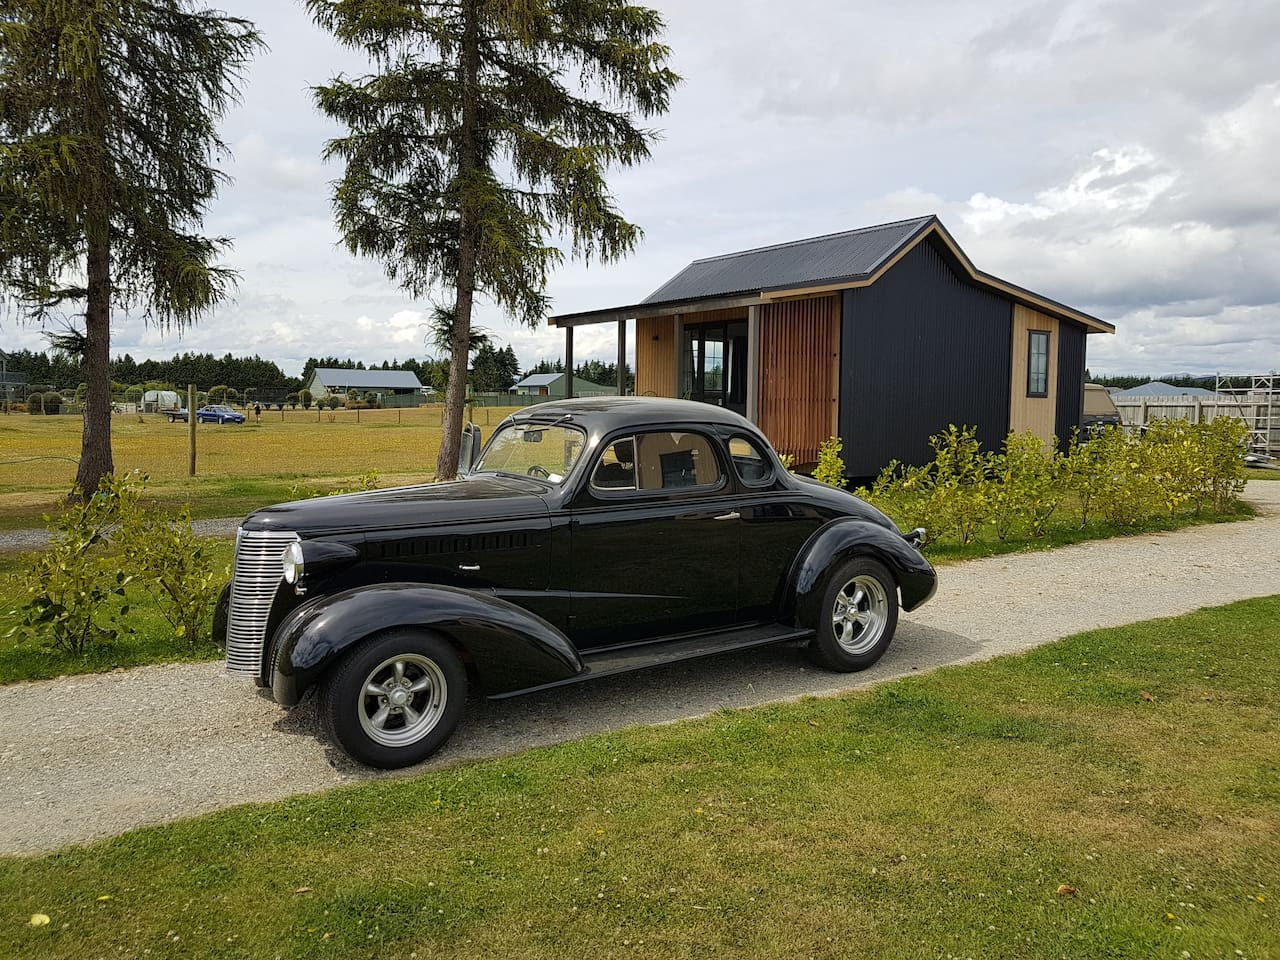 Tussock Hut and our 1938 Chevy Coupe